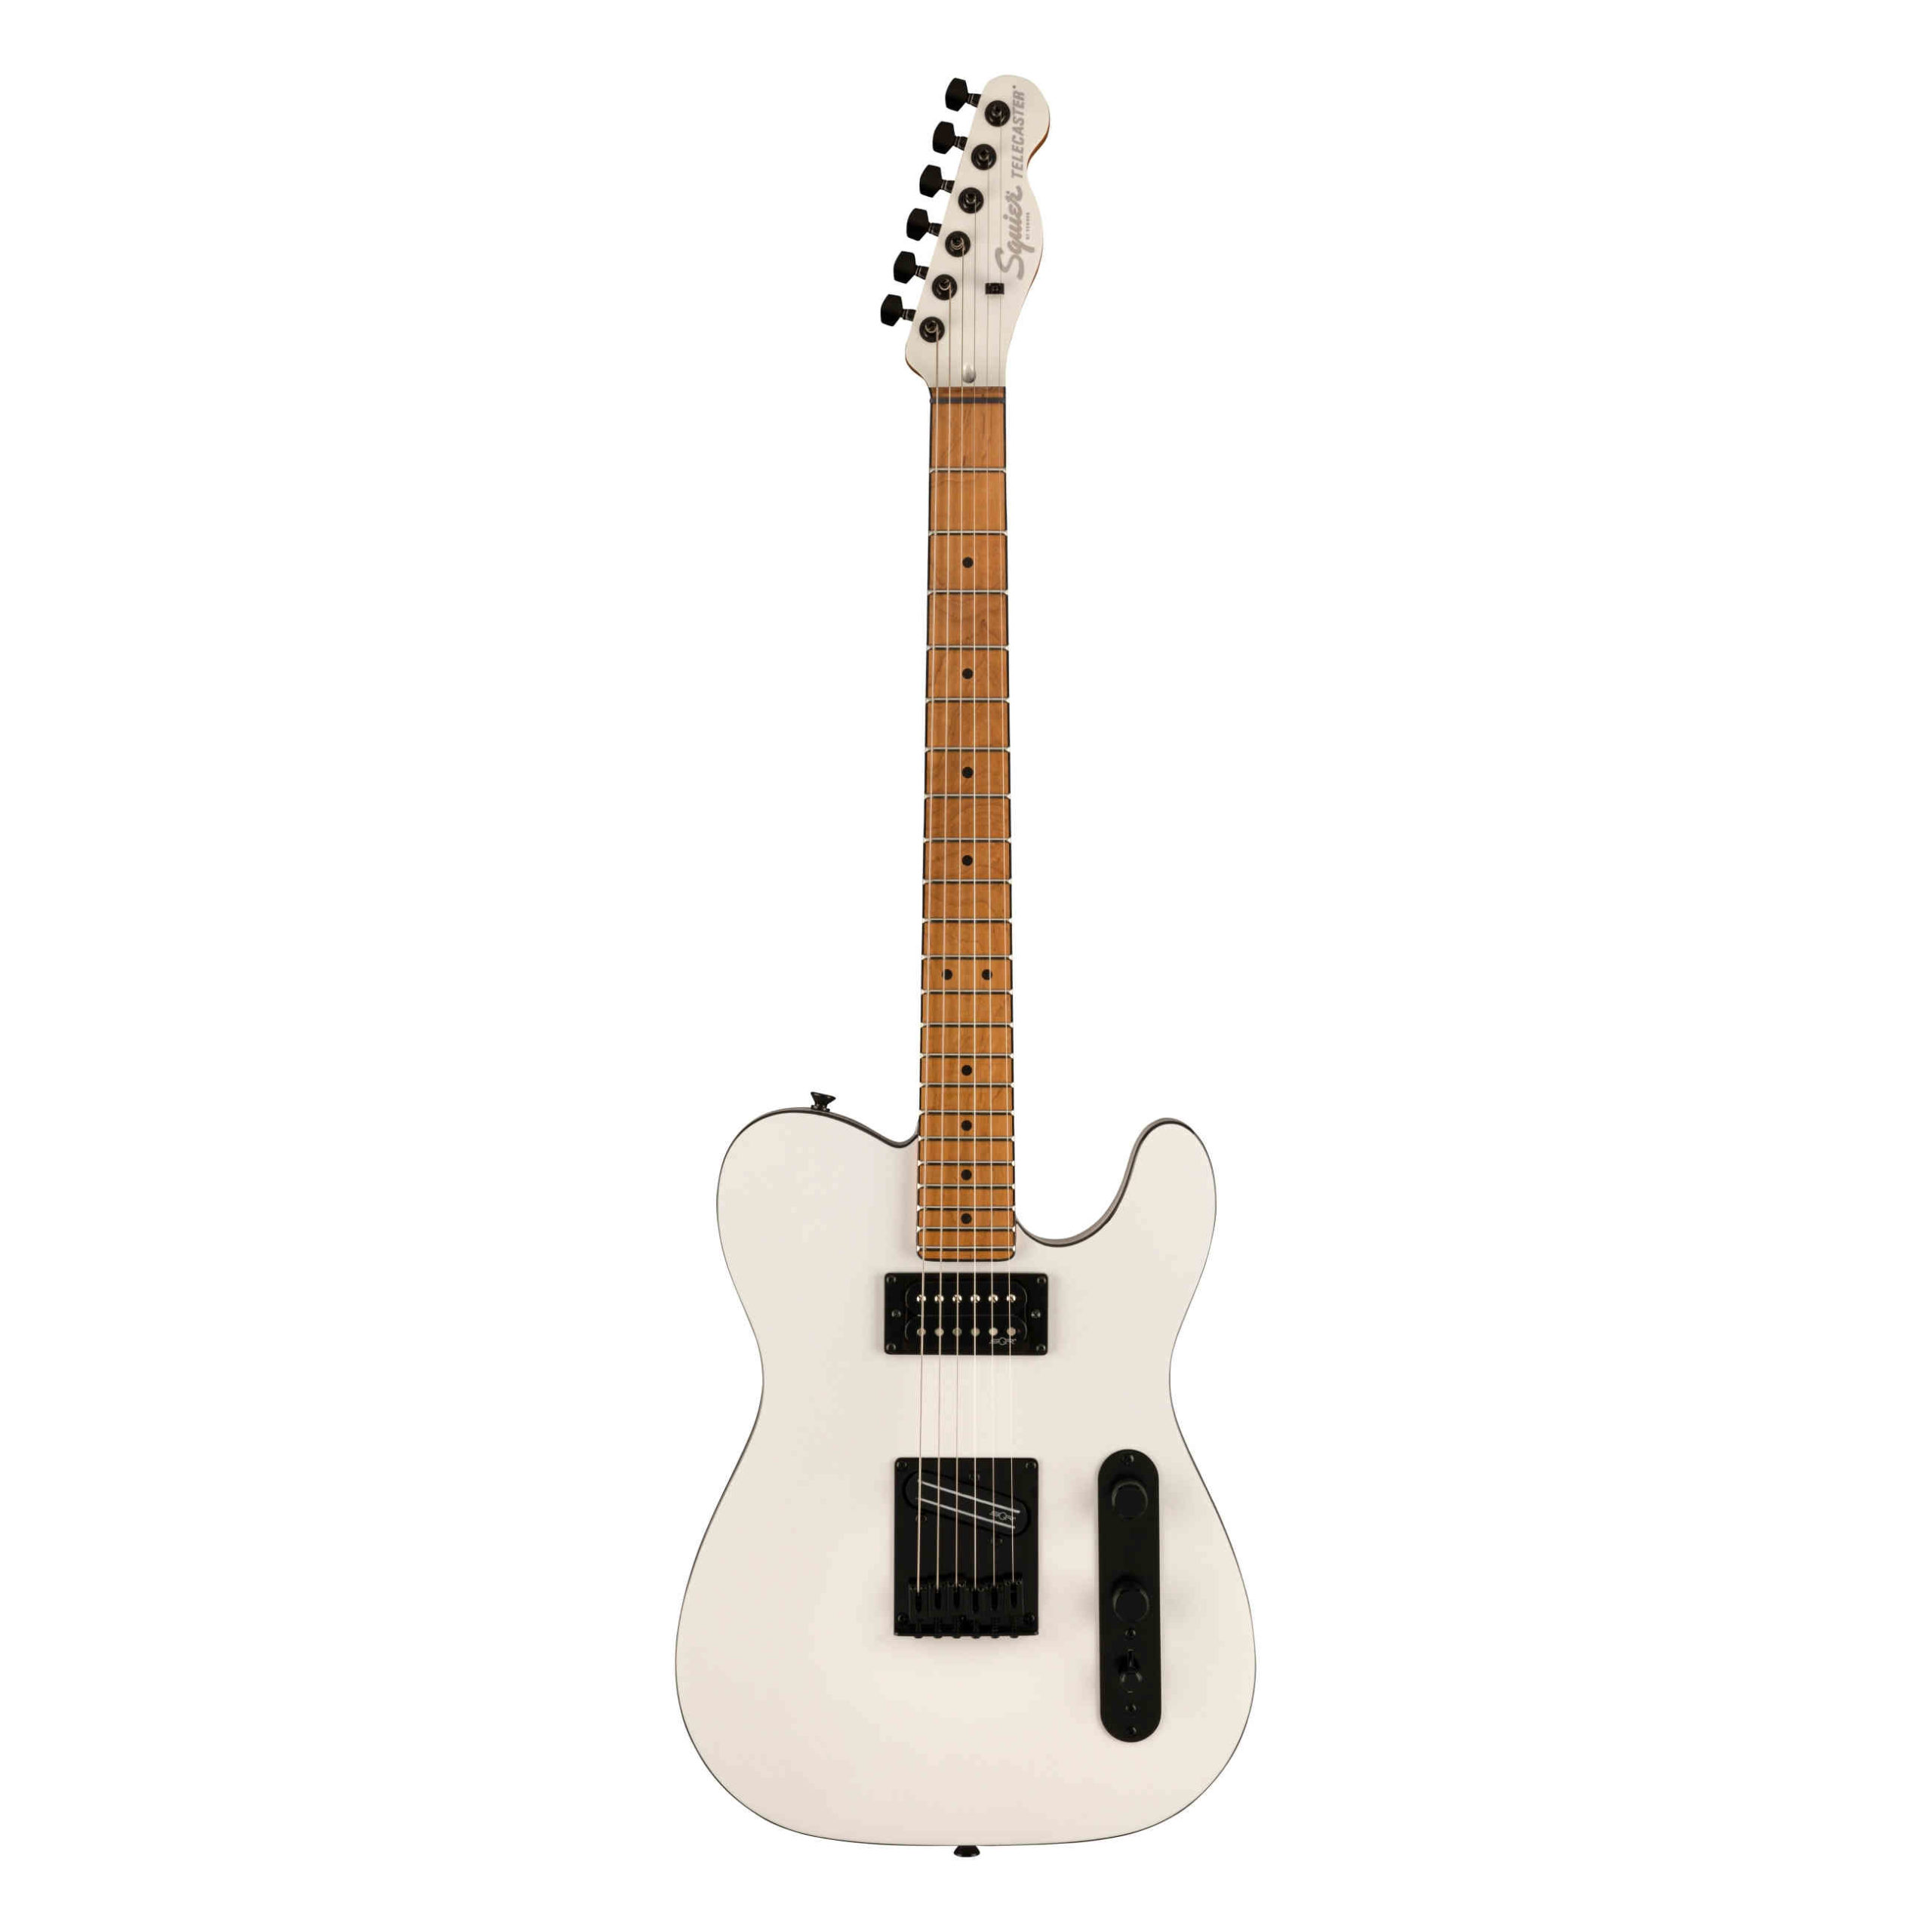 Squier Contemporary Telecaster® RH, Roasted Maple Fingerboard, Pearl White